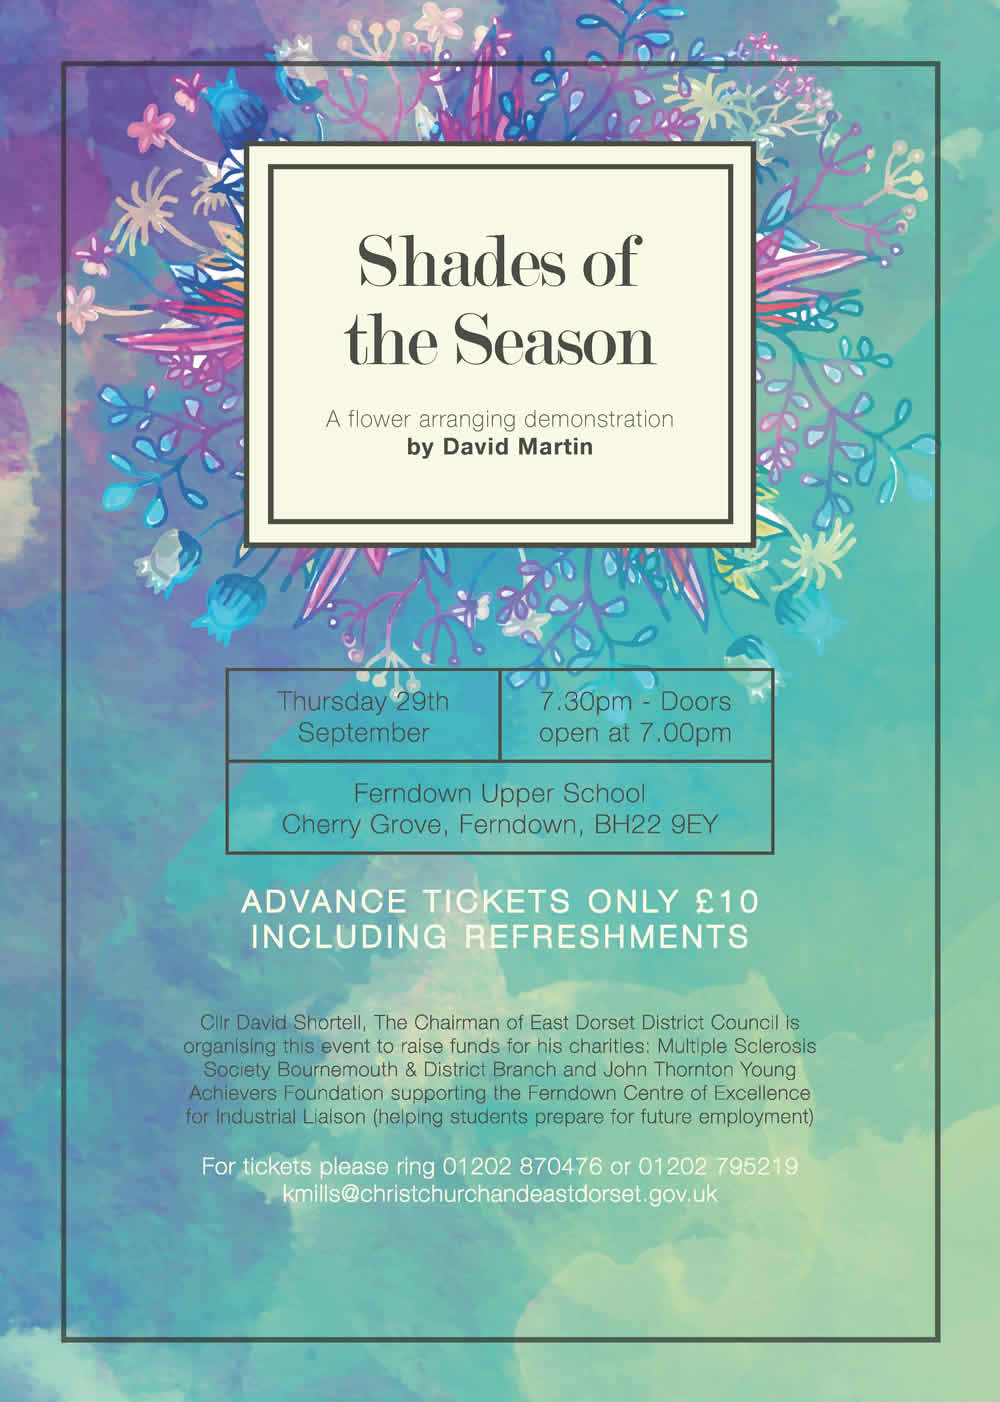 shades-of-the-season